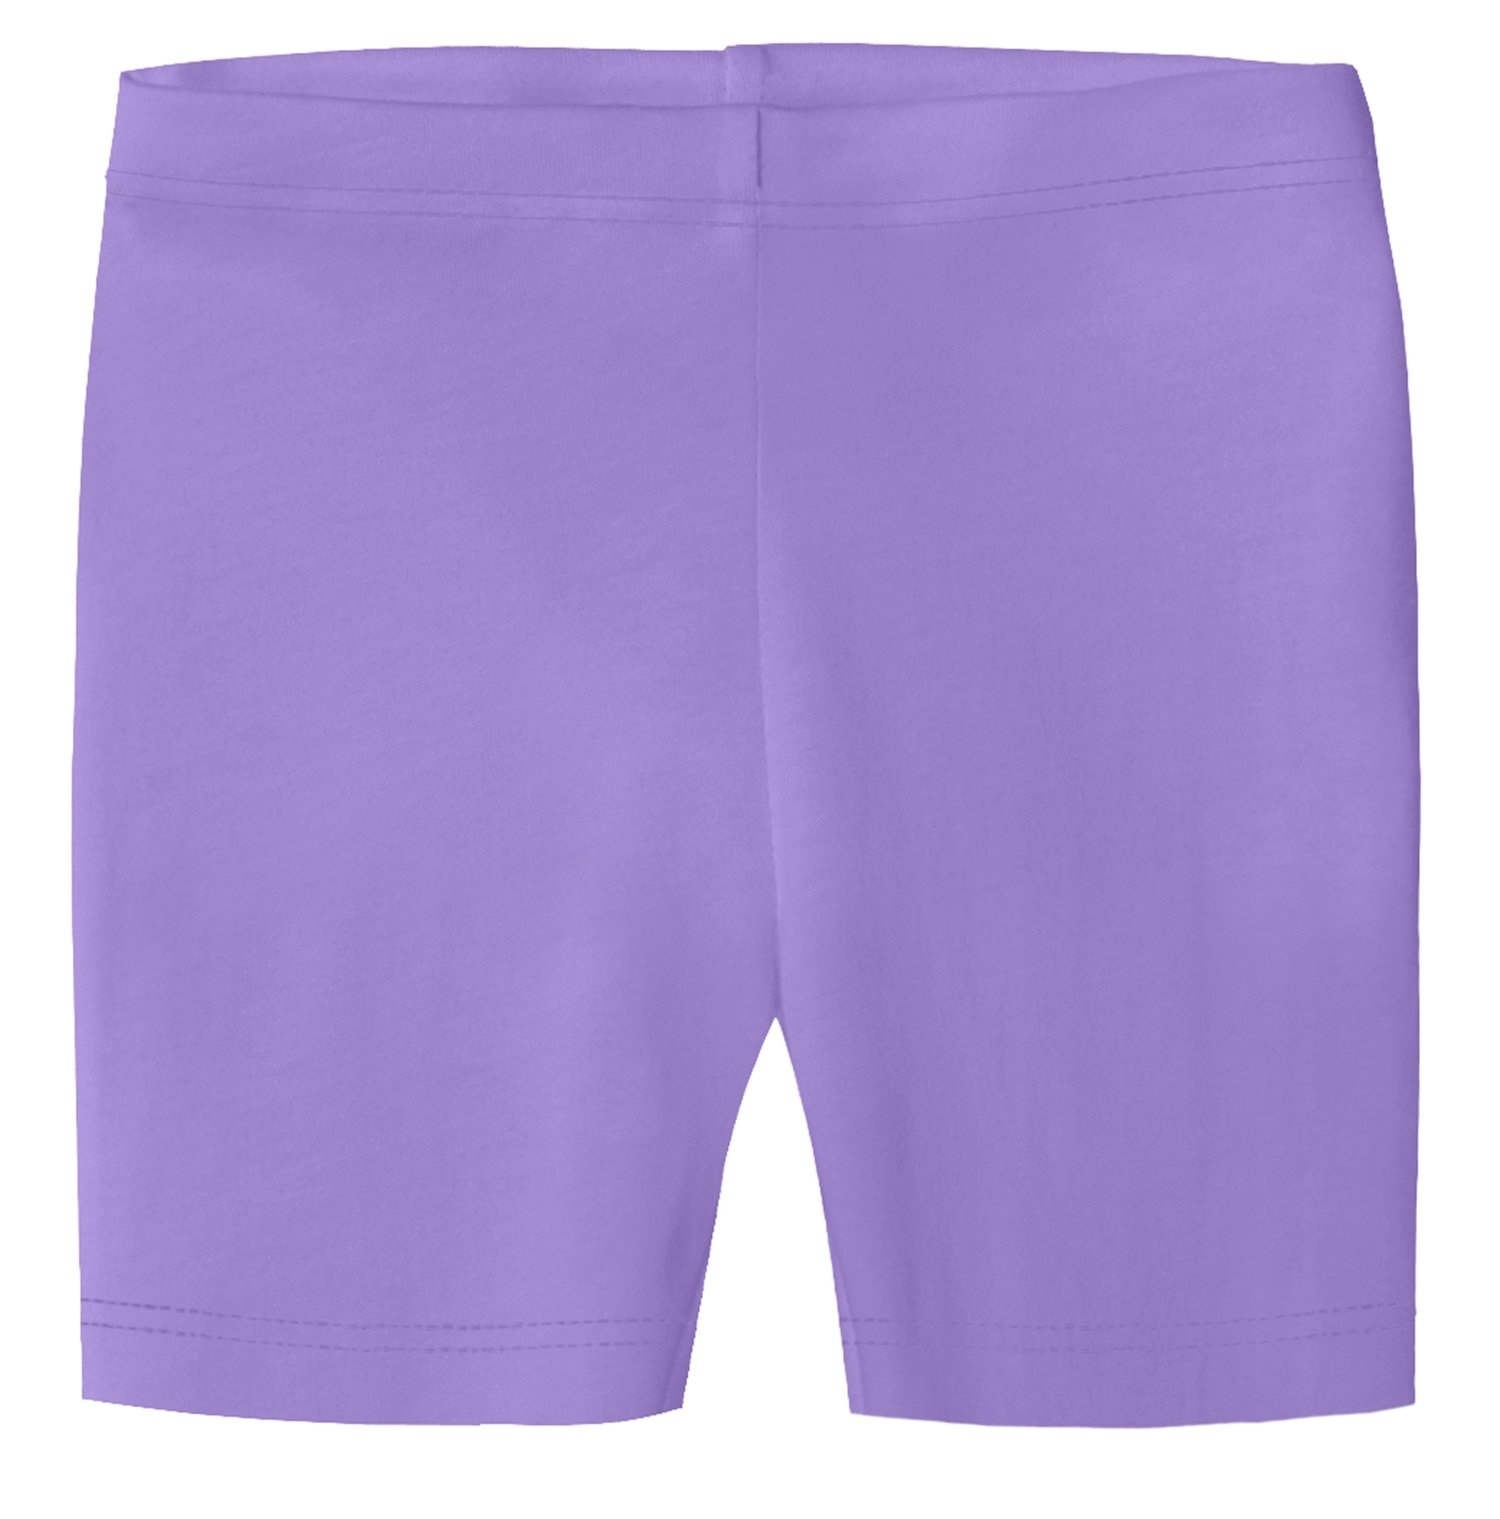 City Threads Little Girls Underwear Bike Shorts In All Cotton Perfect For SPD and Sensitive Skin Sports Dance School Uniform, Deep Purple 3T